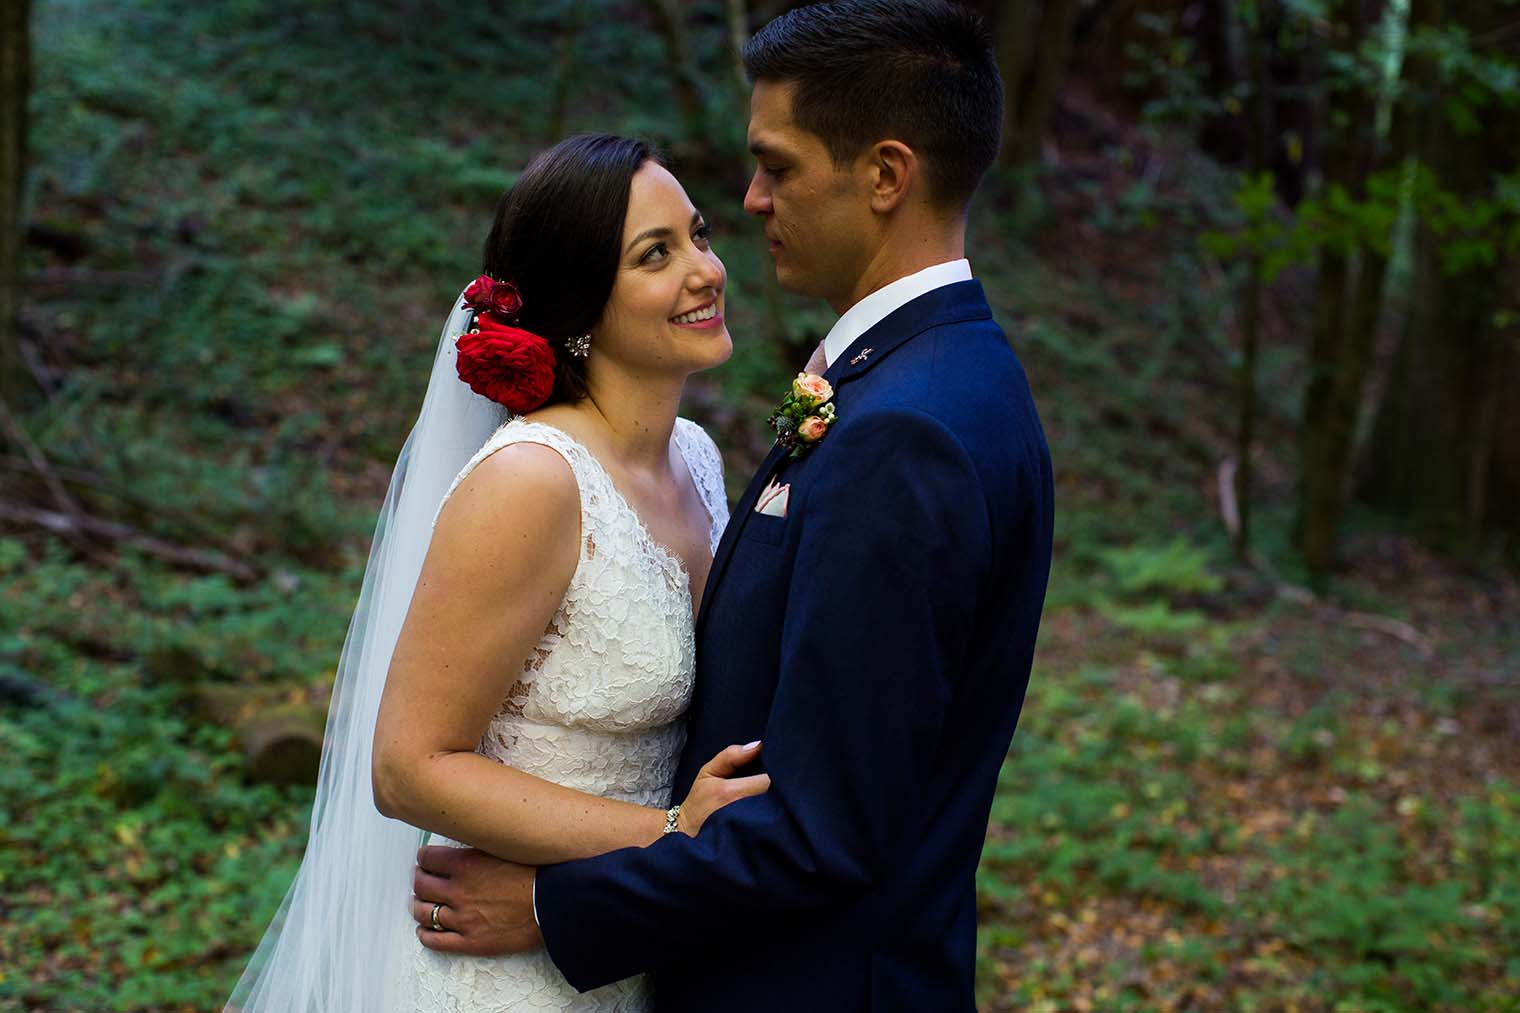 wedding portraits in the forest near Guerneville, CA